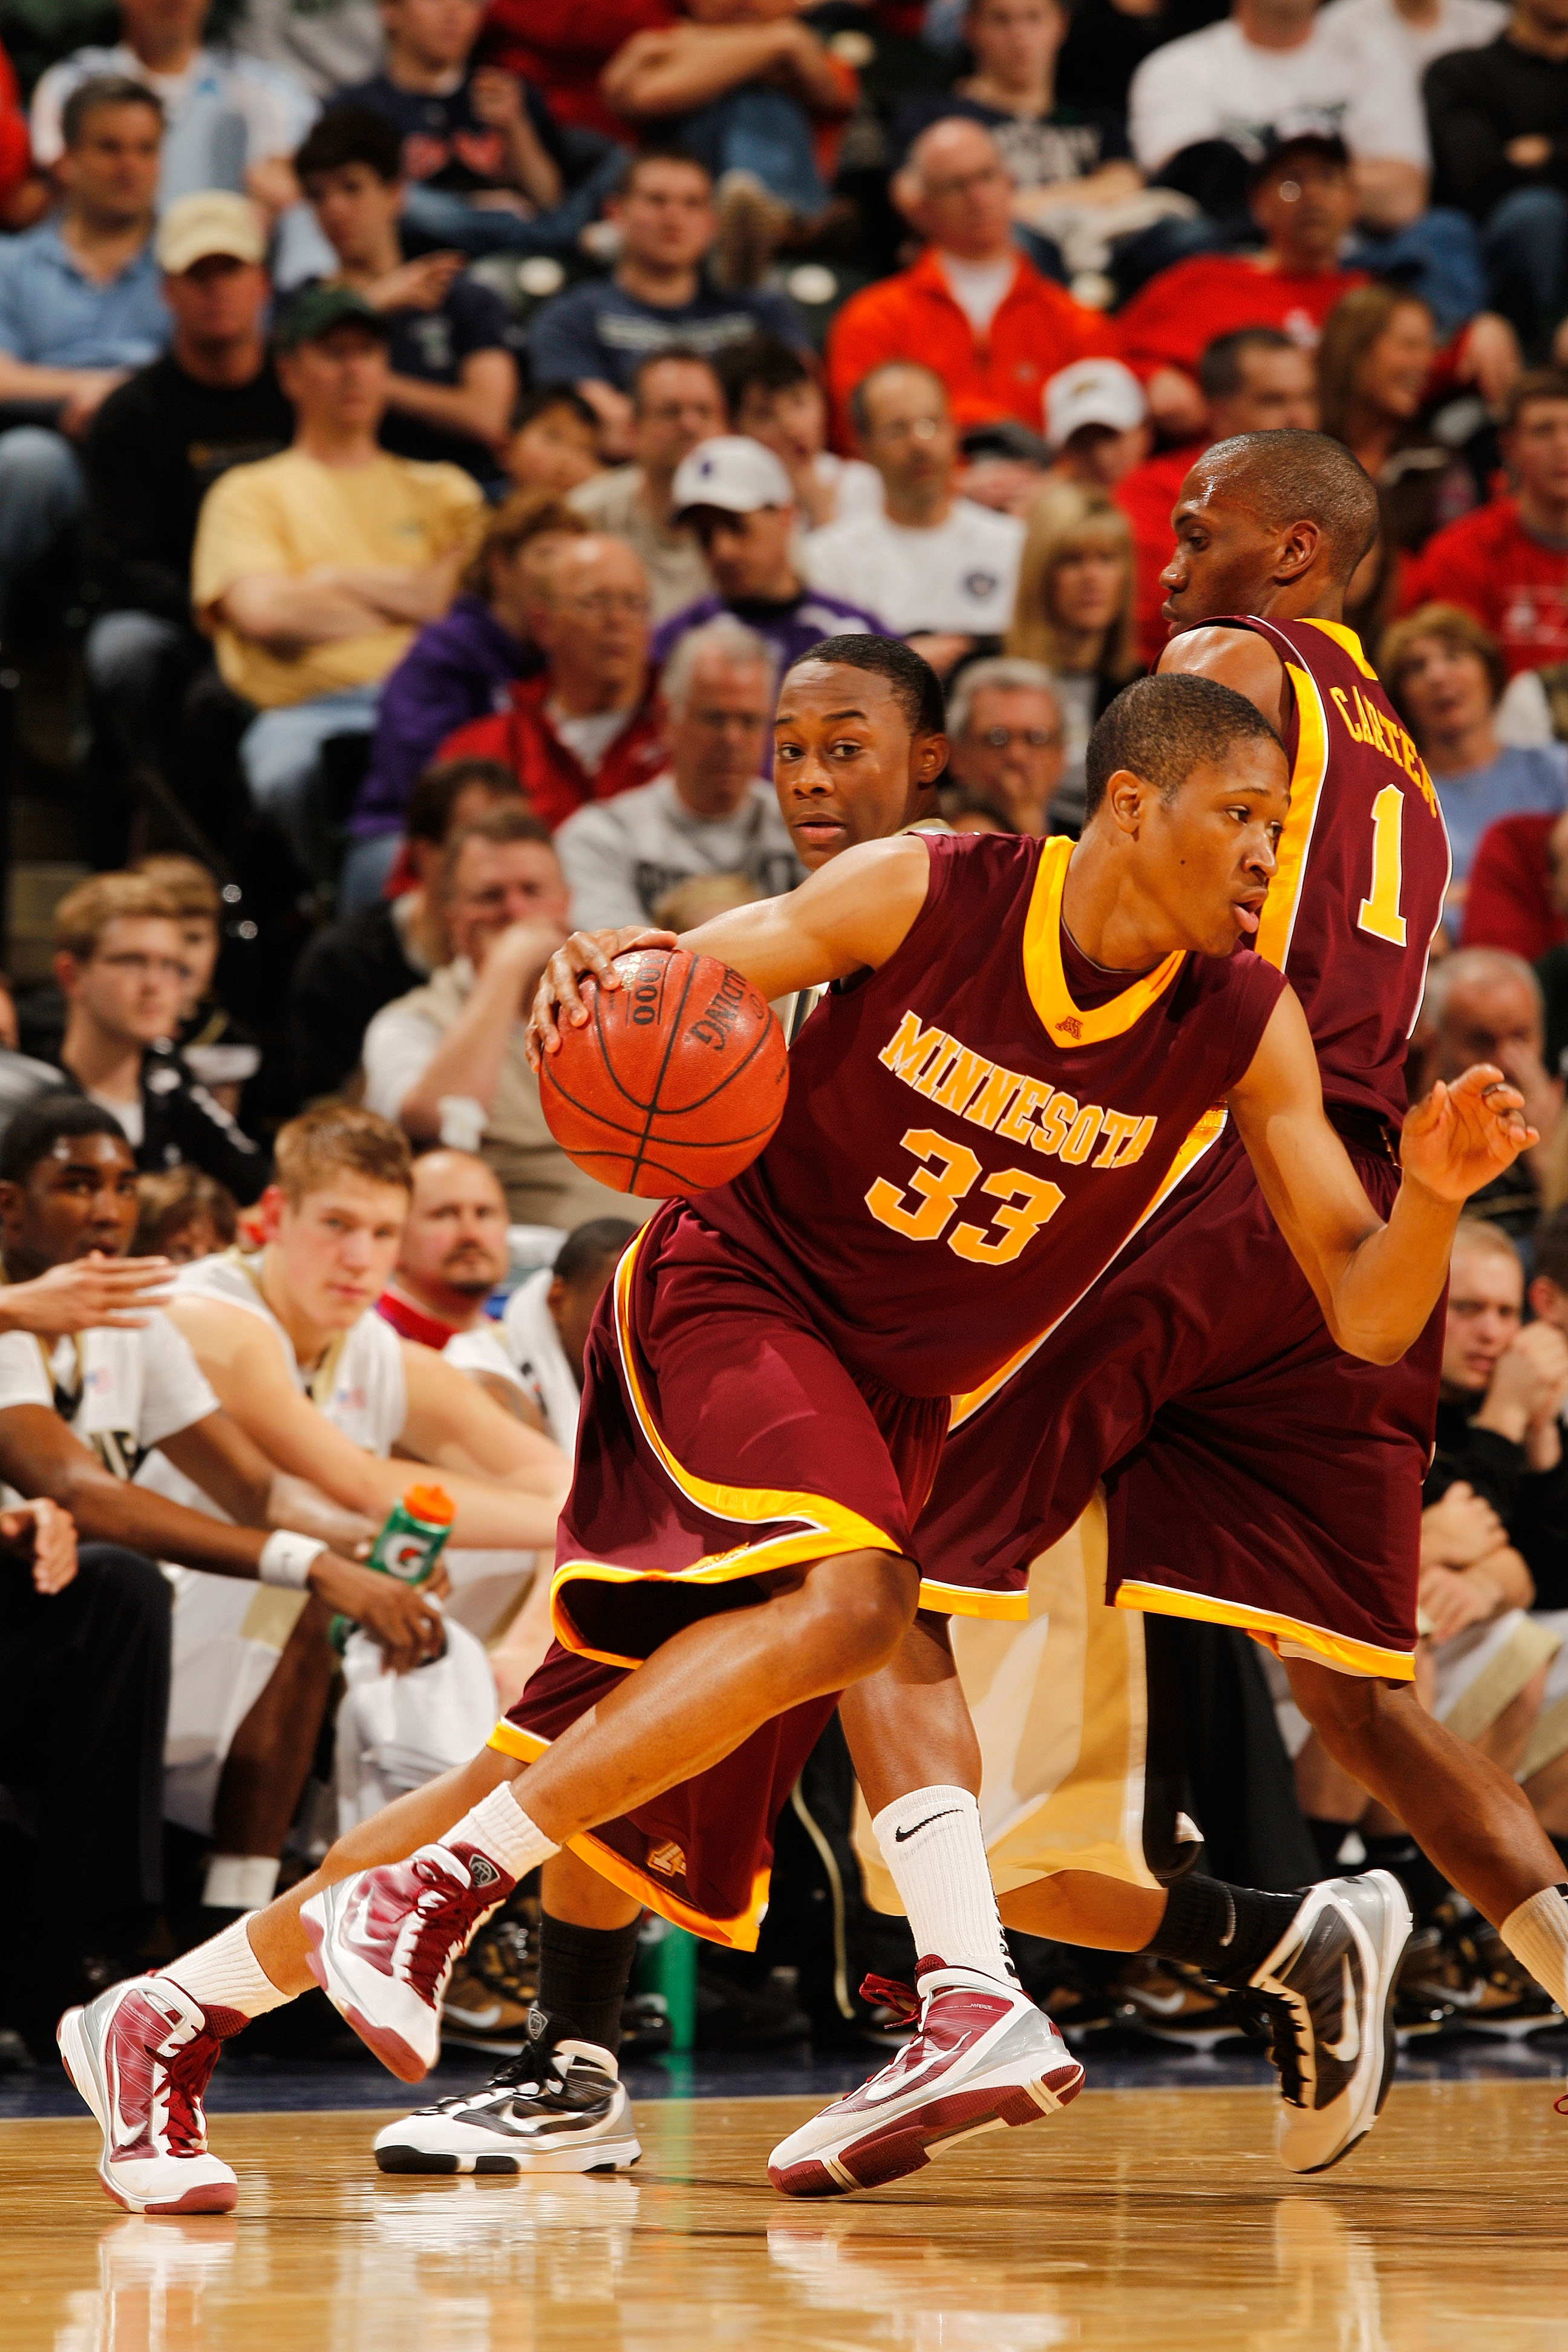 INDIANAPOLIS - MARCH 13:  Forward Rodney Williams #33 of the Minnesota Golden Gophers drives against the Purdue Boilermakers in the semifinals of the Big Ten Men's Basketball Tournament at Conseco Fieldhouse on March 13, 2010 in Indianapolis, Indiana.  (P